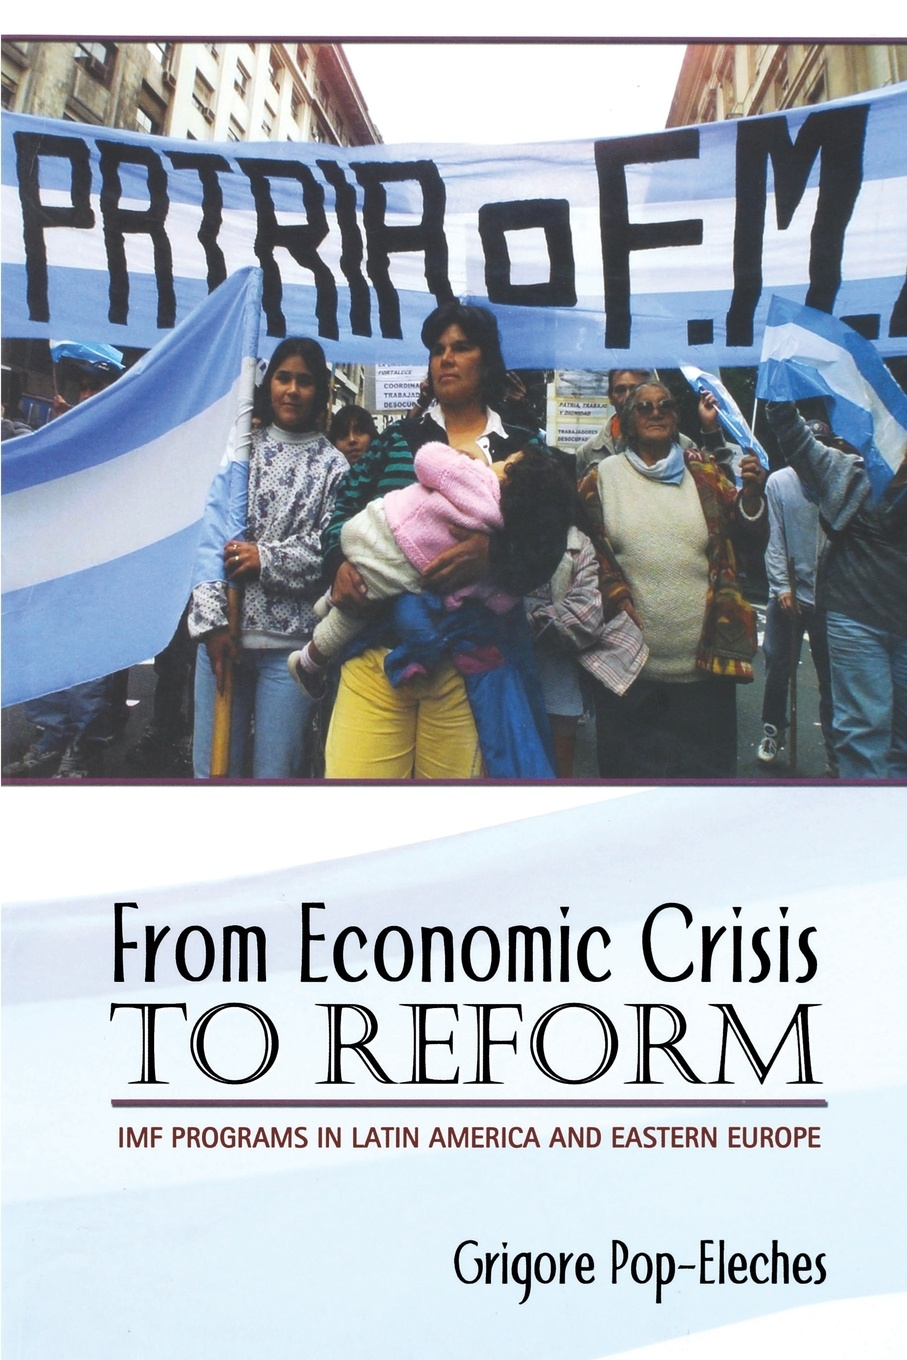 цены на Grigore Pop-Eleches From Economic Crisis to Reform. IMF Programs in Latin America and Eastern Europe  в интернет-магазинах